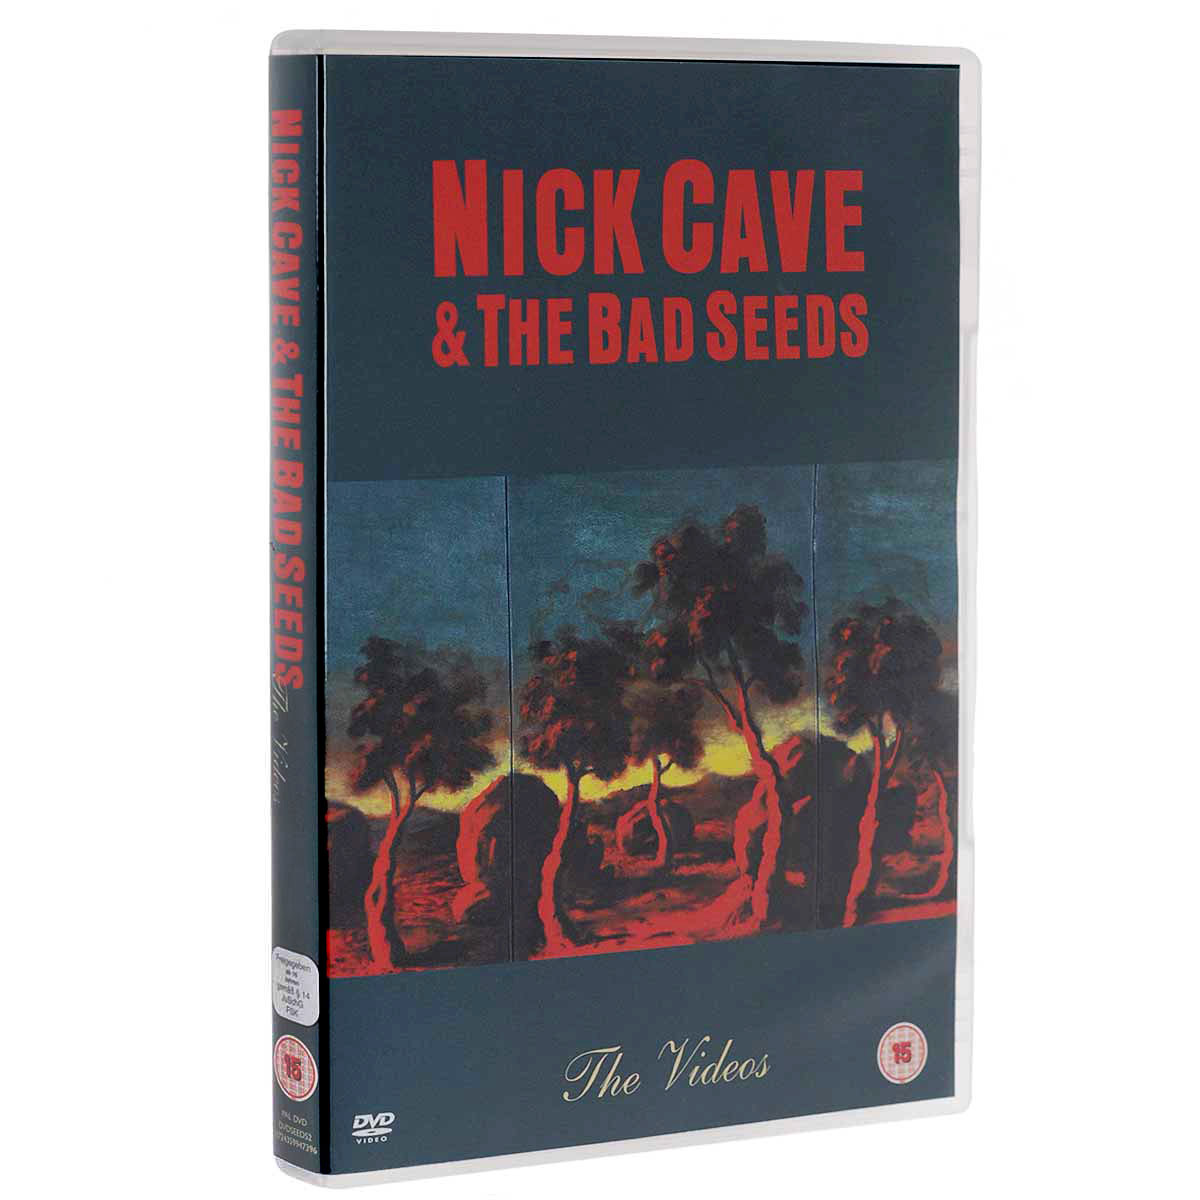 A collection of Nick Cave & The Bad Seeds' promotional films including the rarely seen 'Stagger Lee' and 'Wanted Man', along with such classics as 'The Mercy Seat', 'The Ship Song' and 'Where The Wild Roses Grow' (featuring Kyiie Minogue), this compilation is an uncompromising and vivid portrait of one of the world's most critically acclaimed songwriters.With introductory links by the band themselves, it provides an informative, provoking, illuminating and passionately intimate journey through the very best of Nick Cave & The Bad Seeds. Track listing: 01. Stagger Lee02. Where The Wild Roses Grow03. Into My Arms04. (Are You) The One That I've Been Waiting For05. Henry Lee06. Red Right Hand07. Loverman08. Do You Love Me? 09. Deanna10. The Ship Song11. Tupelo12. In The Ghetto13. Jask The Ripper14. What A Wonderful World15. Straight To You16. The Mercy Seat17. The Weeping Song18. The Singer19. UI Had A Dream Joe20. Wanted Man